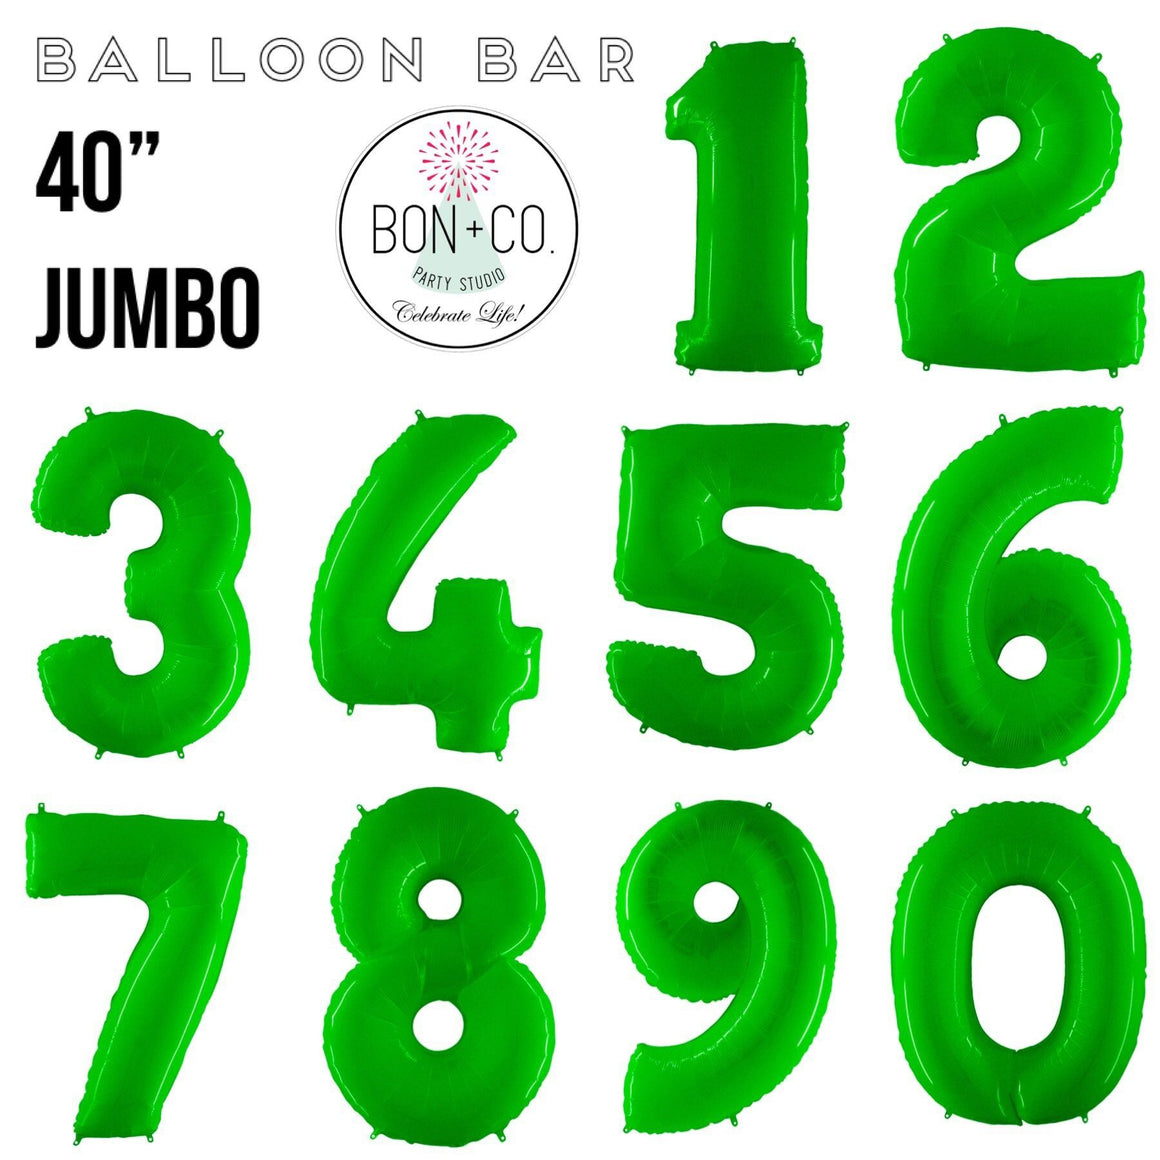 "BALLOON BAR - 40"" JUMBO NUMBER BRIGHT LIME, Balloons, bargain balloons - Bon + Co. Party Studio"